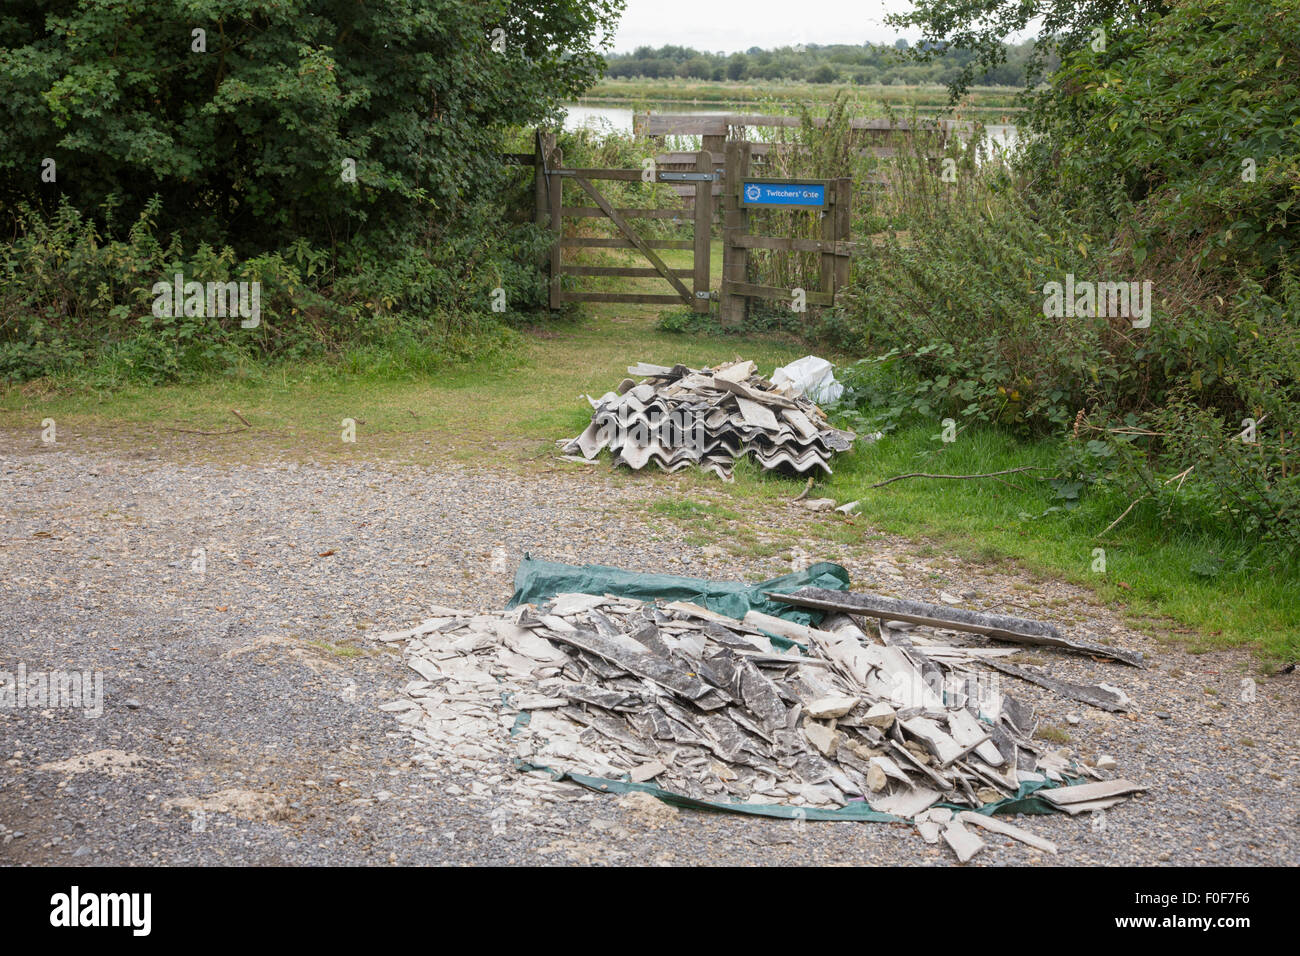 Fly-tipping containing Asbestos next to the entrance of a nature reserve, Gloucestershire, England, UK - Stock Image